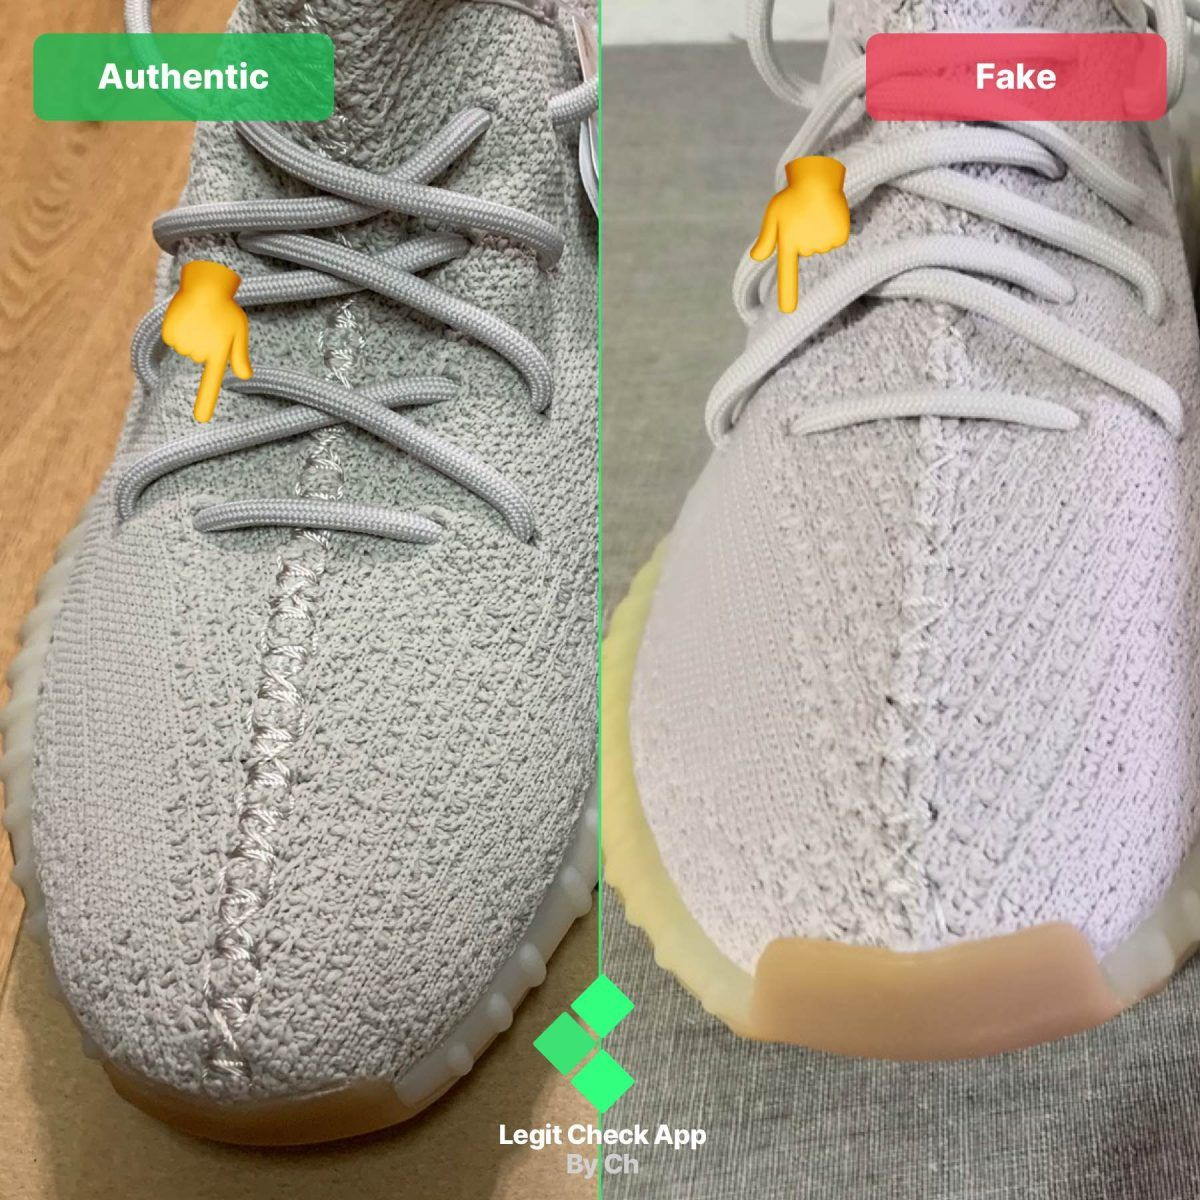 Yeezy Boost 350 V2 Sesame Lacing Guide Lca Yeezy Yeezy Laces Yeezy Boots